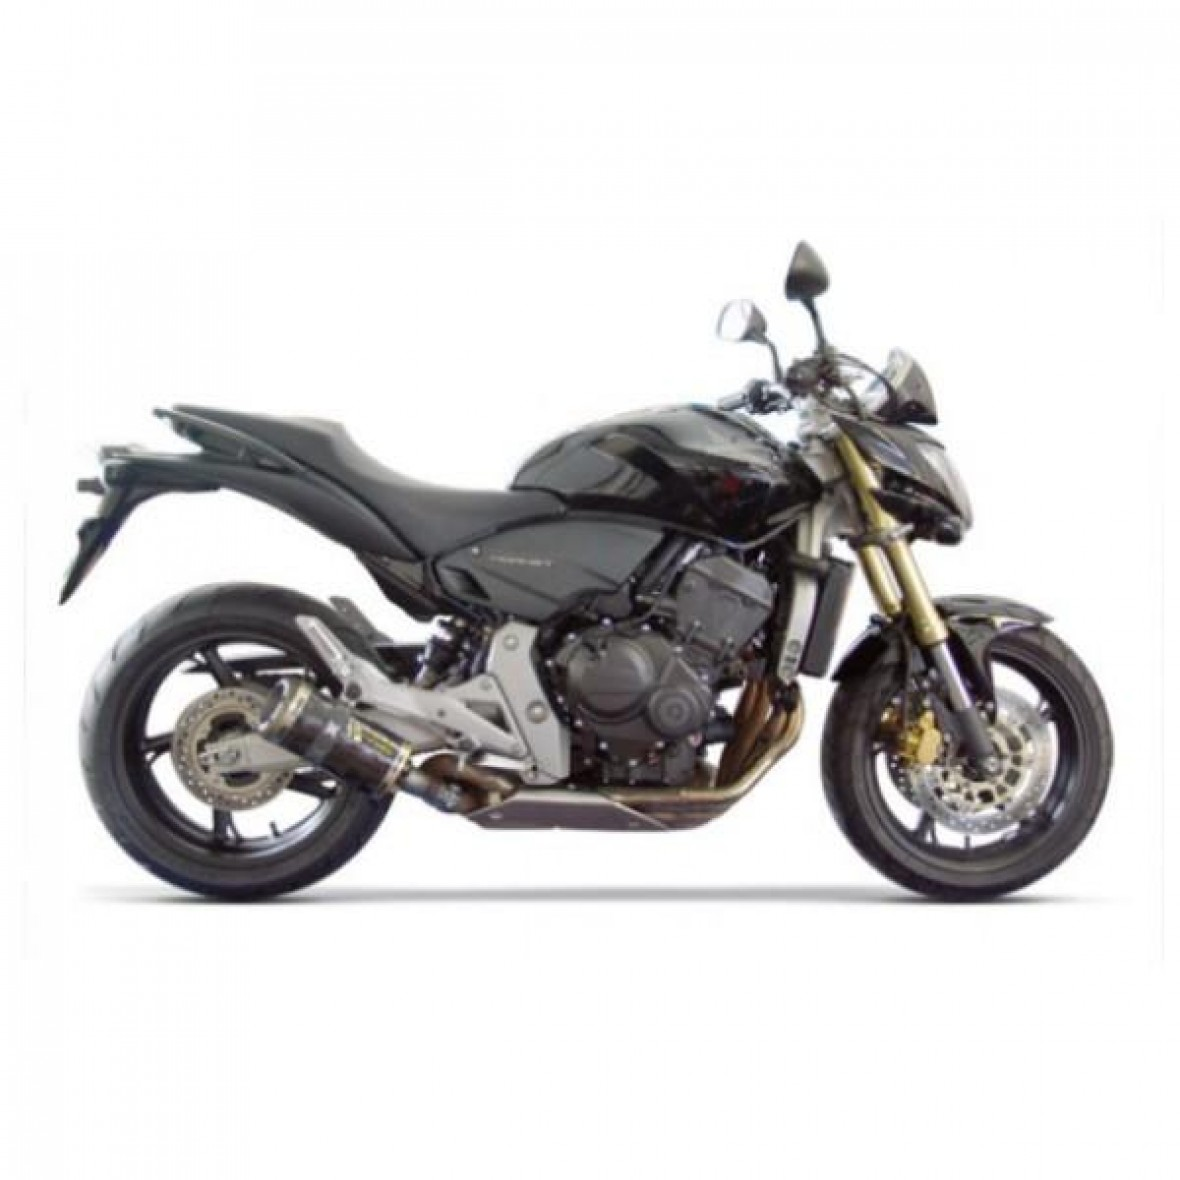 Two Brothers Road Black Series Carbon Slip On Exhaust Honda Hornet